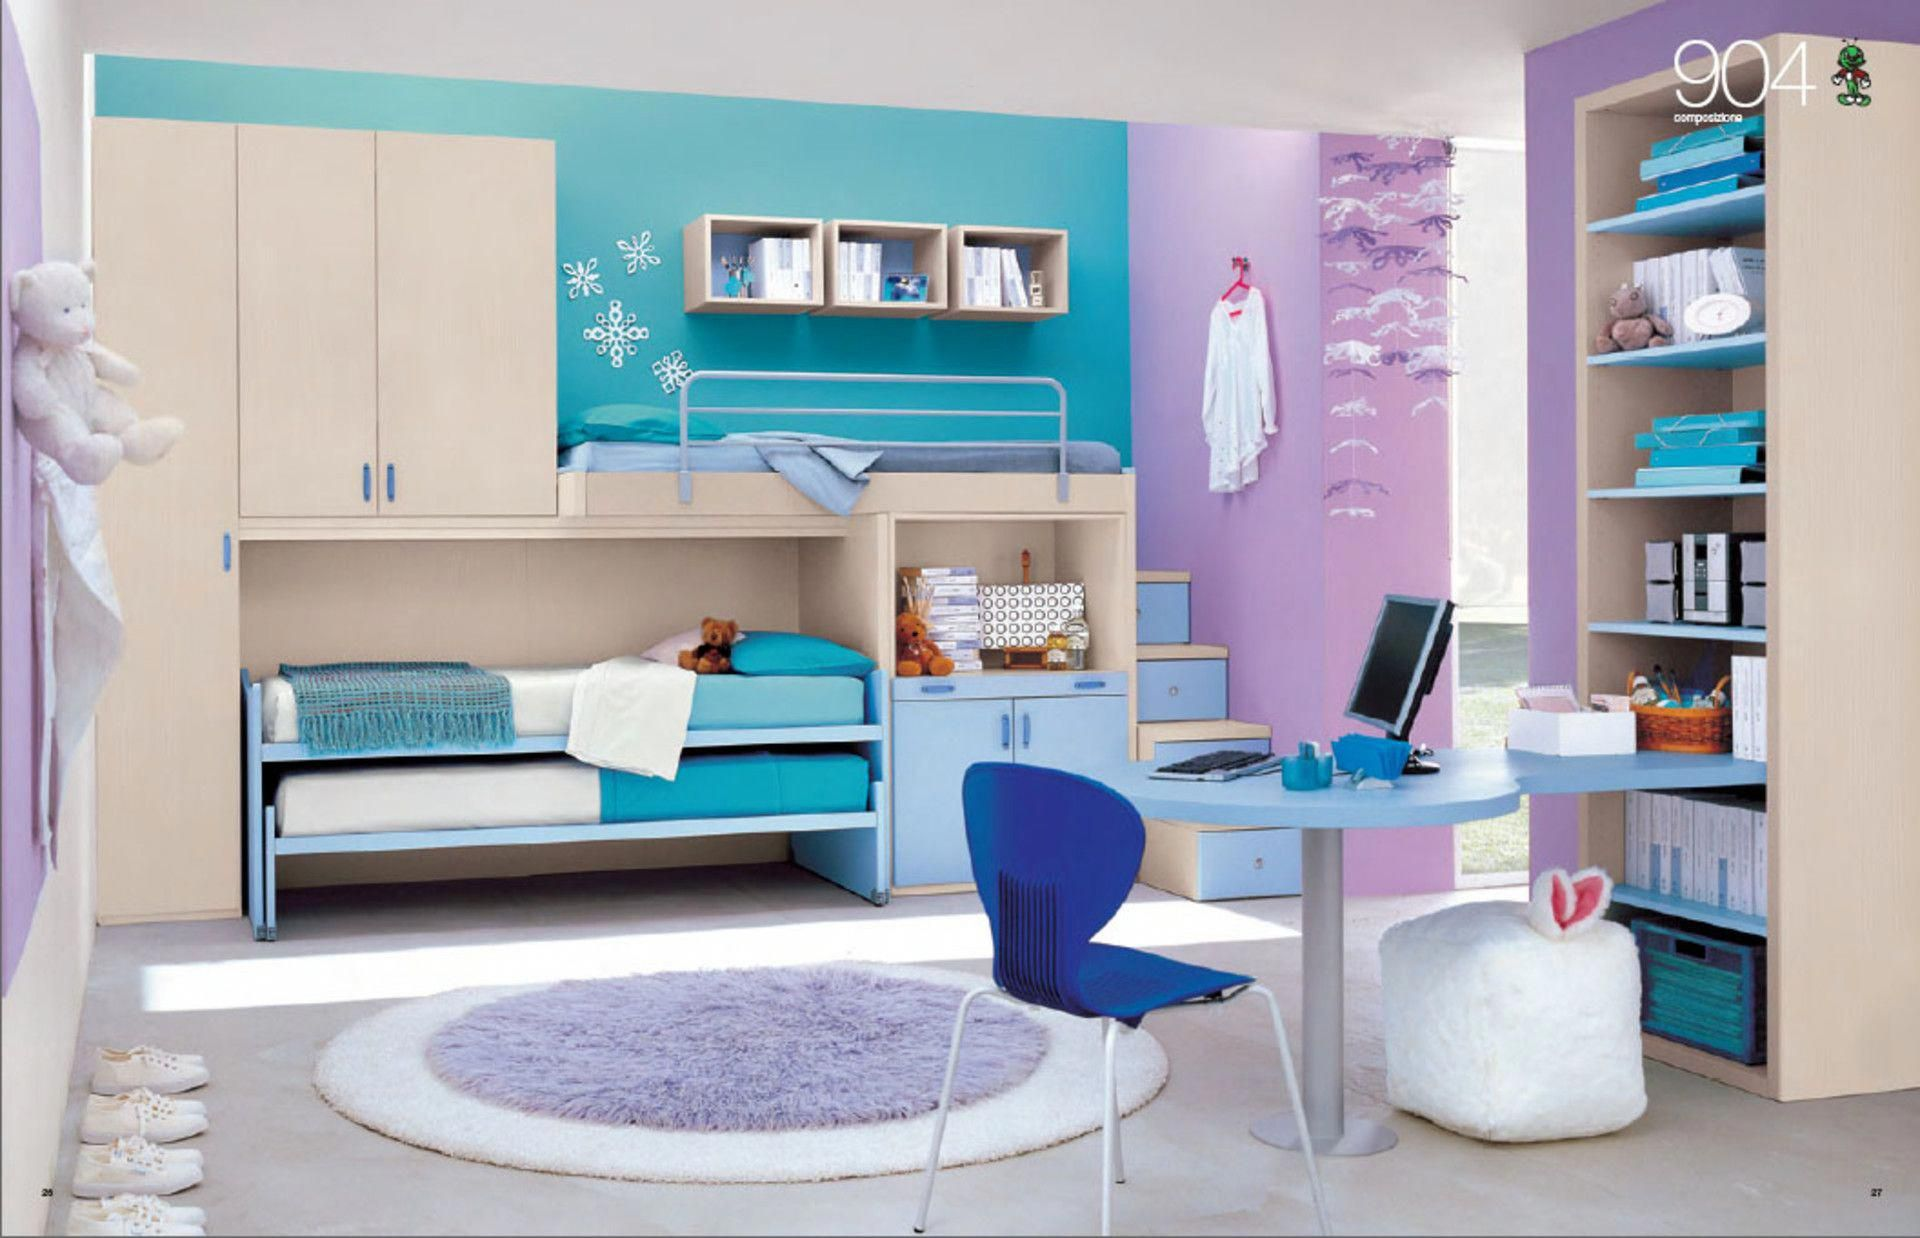 Purple And Blue Themed Bedroom Ideas For Teenage Girls With